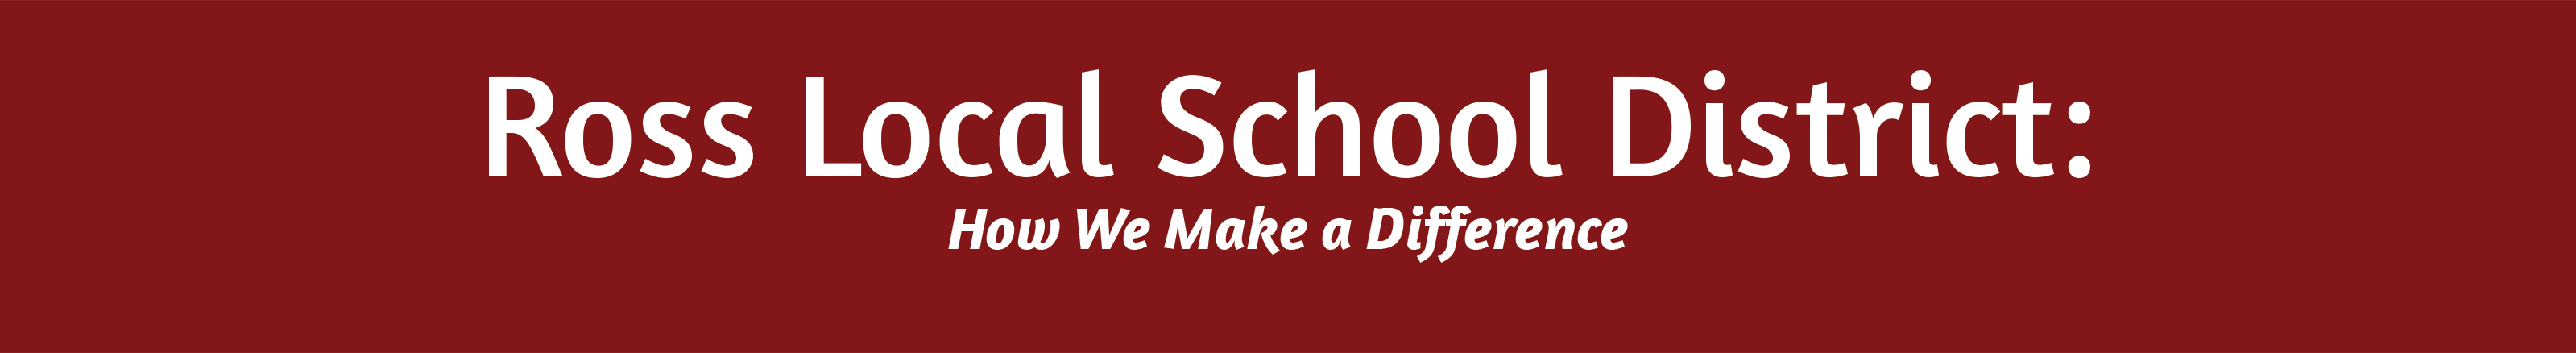 "Header image that reads ""Ross Local School District"""